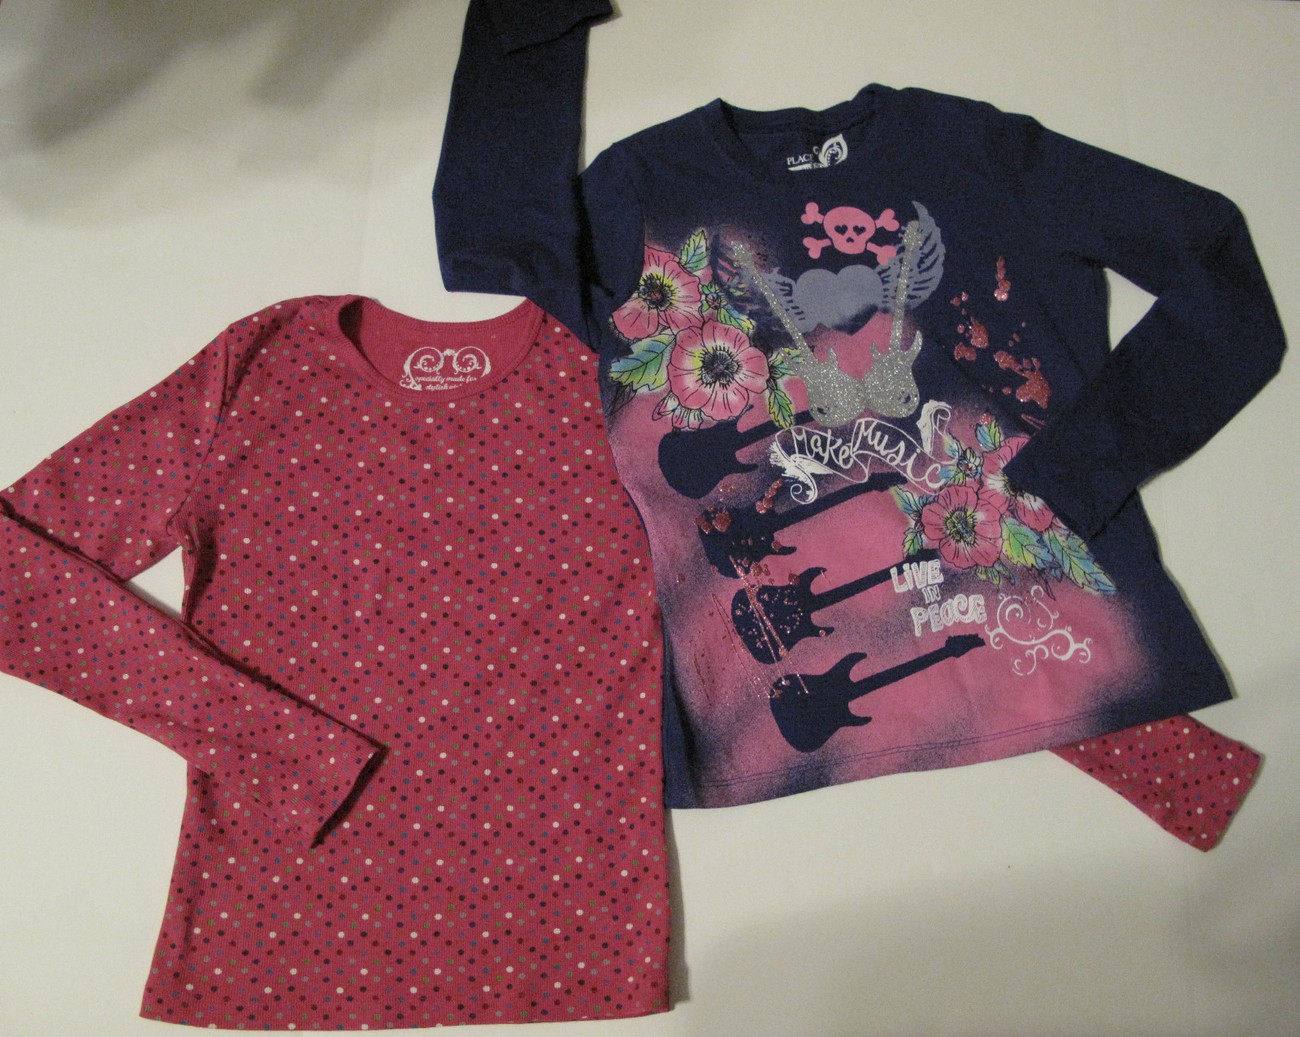 Primary image for Set of 2 Long Sleeve T-shirts, Fushia with Multi-colored Dots & Dark Blue, L